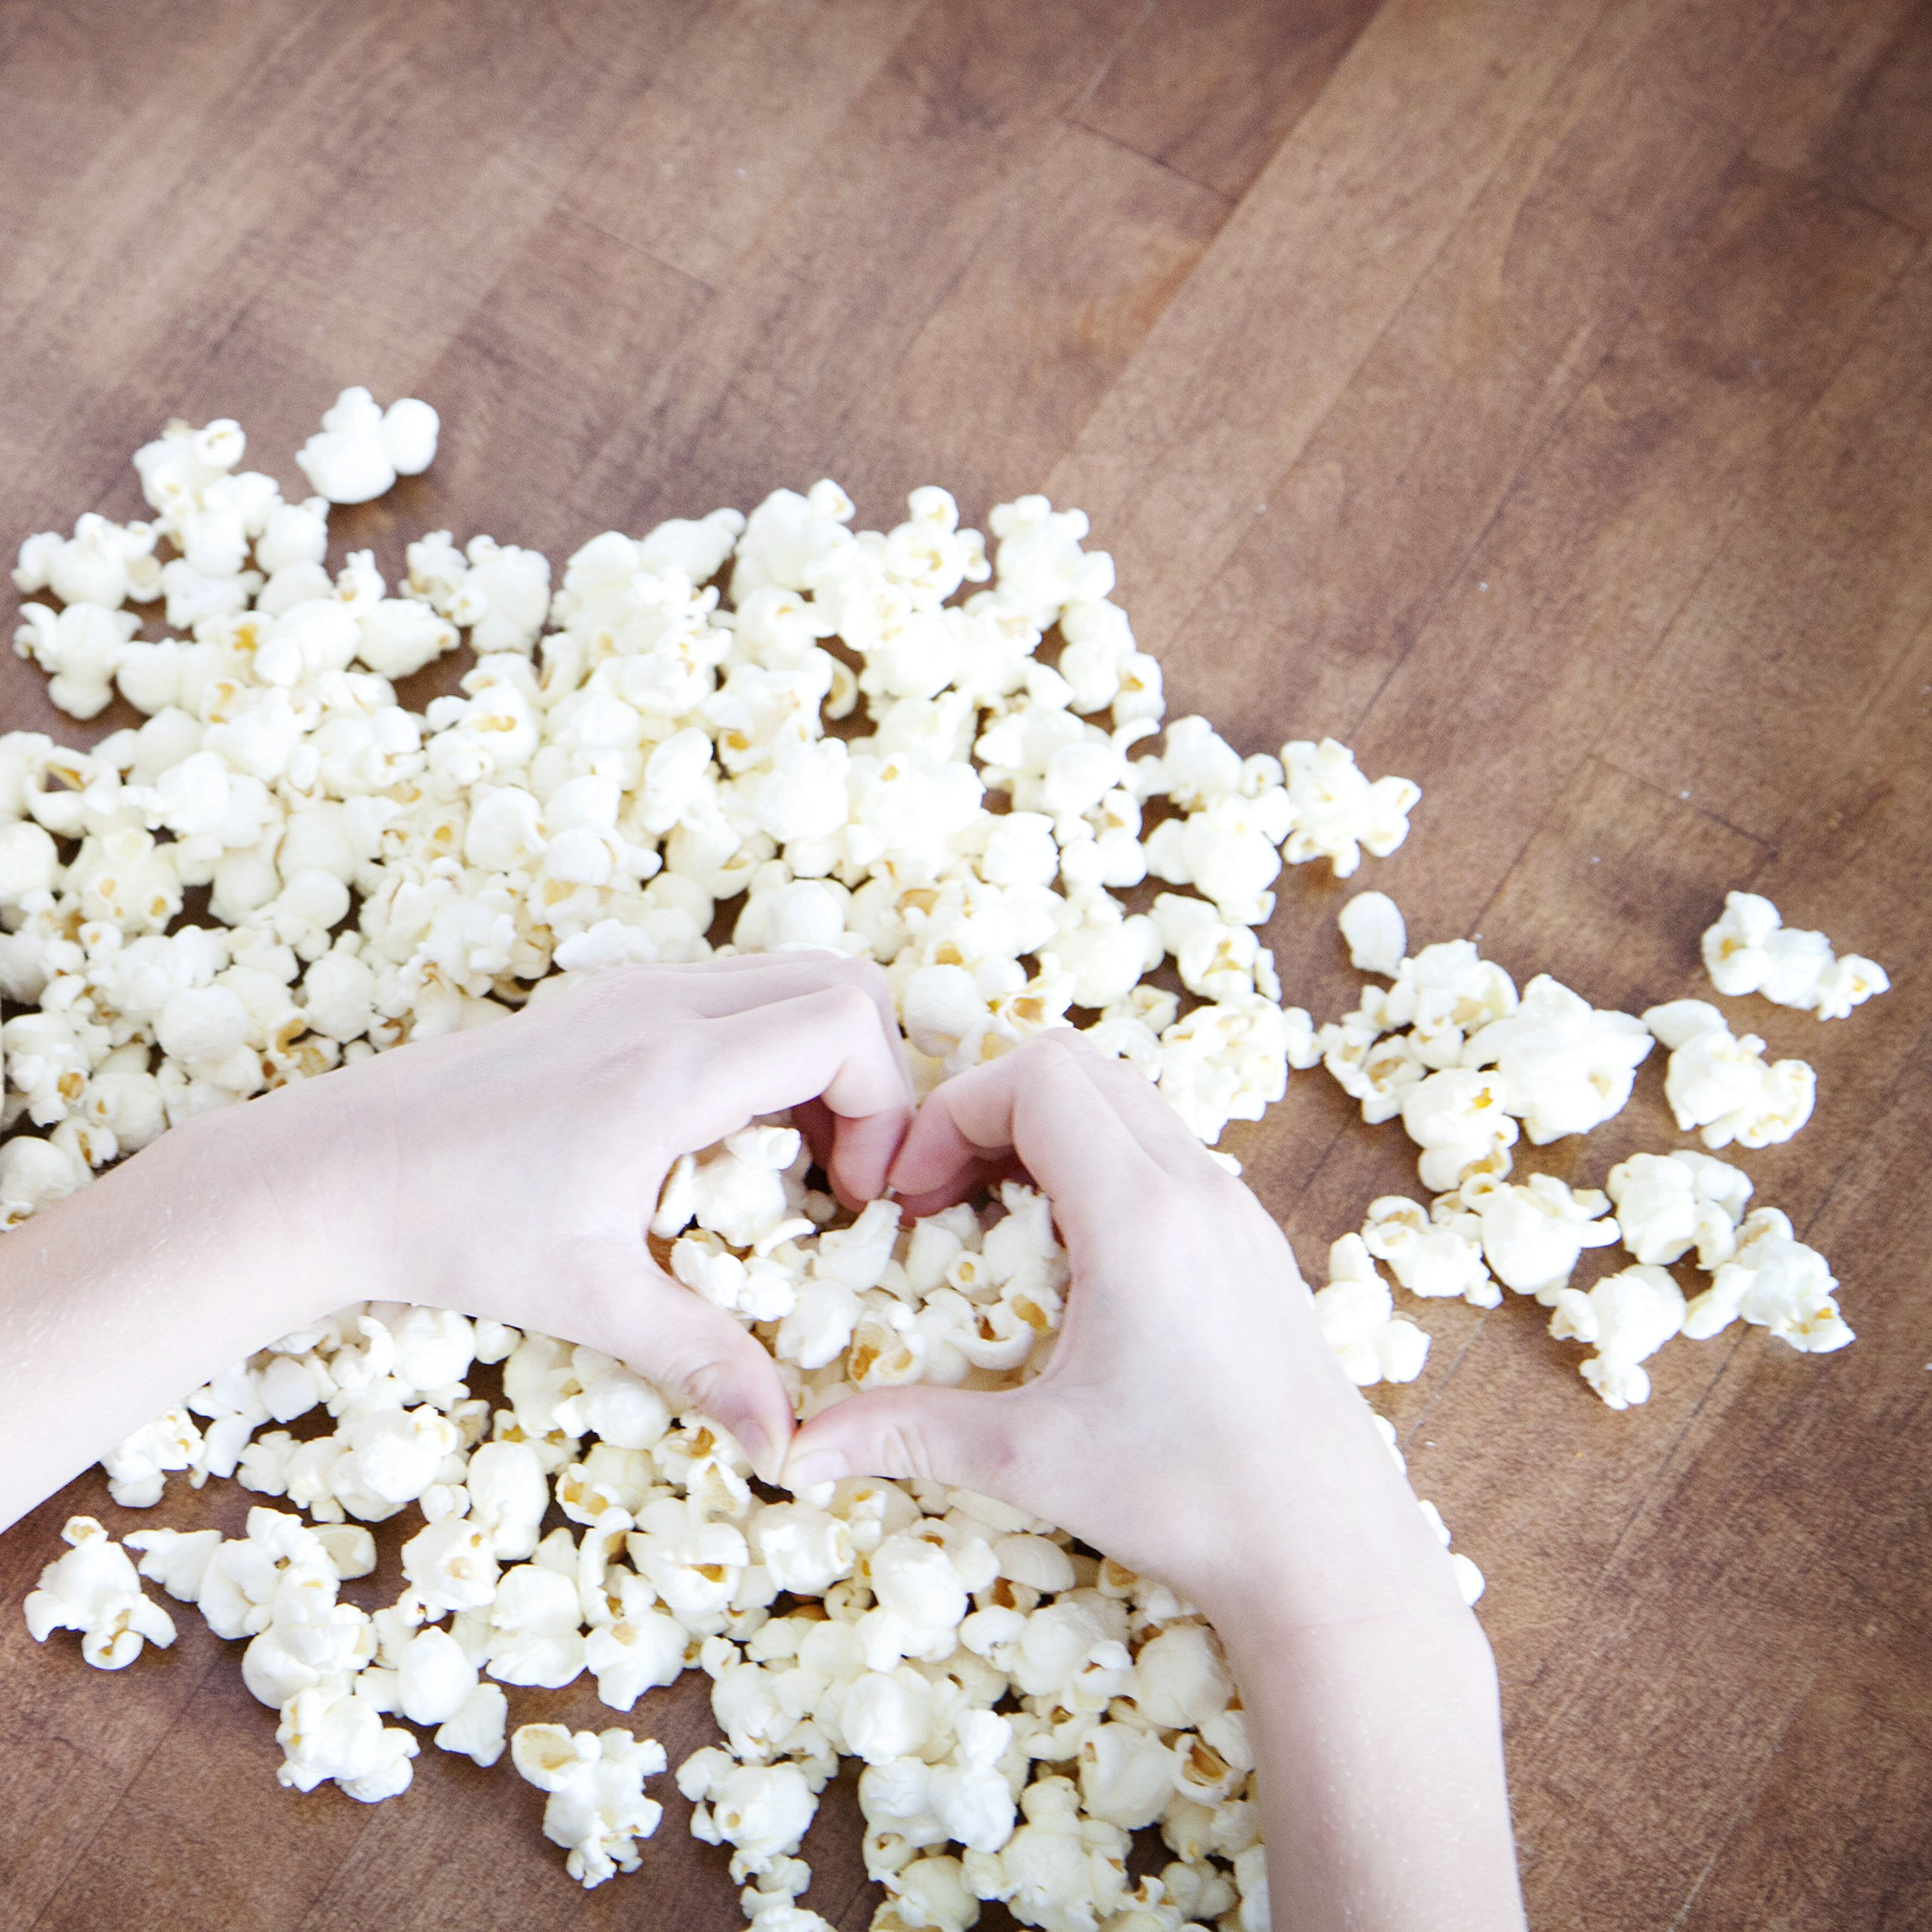 Amish Country Popcorn - 50 Pound Baby White - Small & Tender Popcorn - Perfect for Fundraisers - Non GMO, Gluten Free, Microwaveable, Stovetop and Air Popper Friendly With Recipe Guide by Amish Country Popcorn (Image #5)